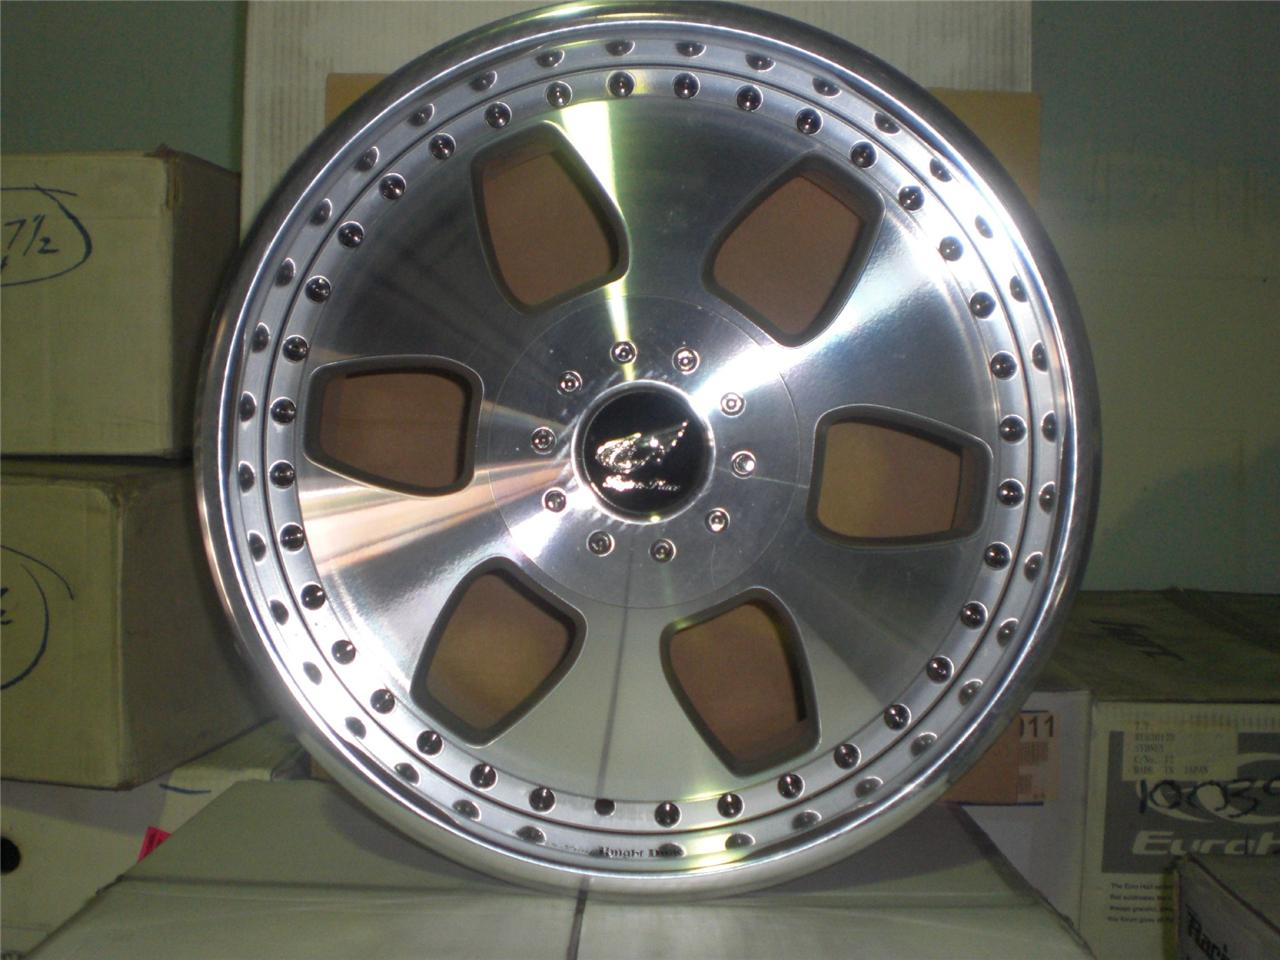 18-inch-5-114-4-114-Payton-Place-Japanese-alloy-mag-wheels-3-wheels-only-102